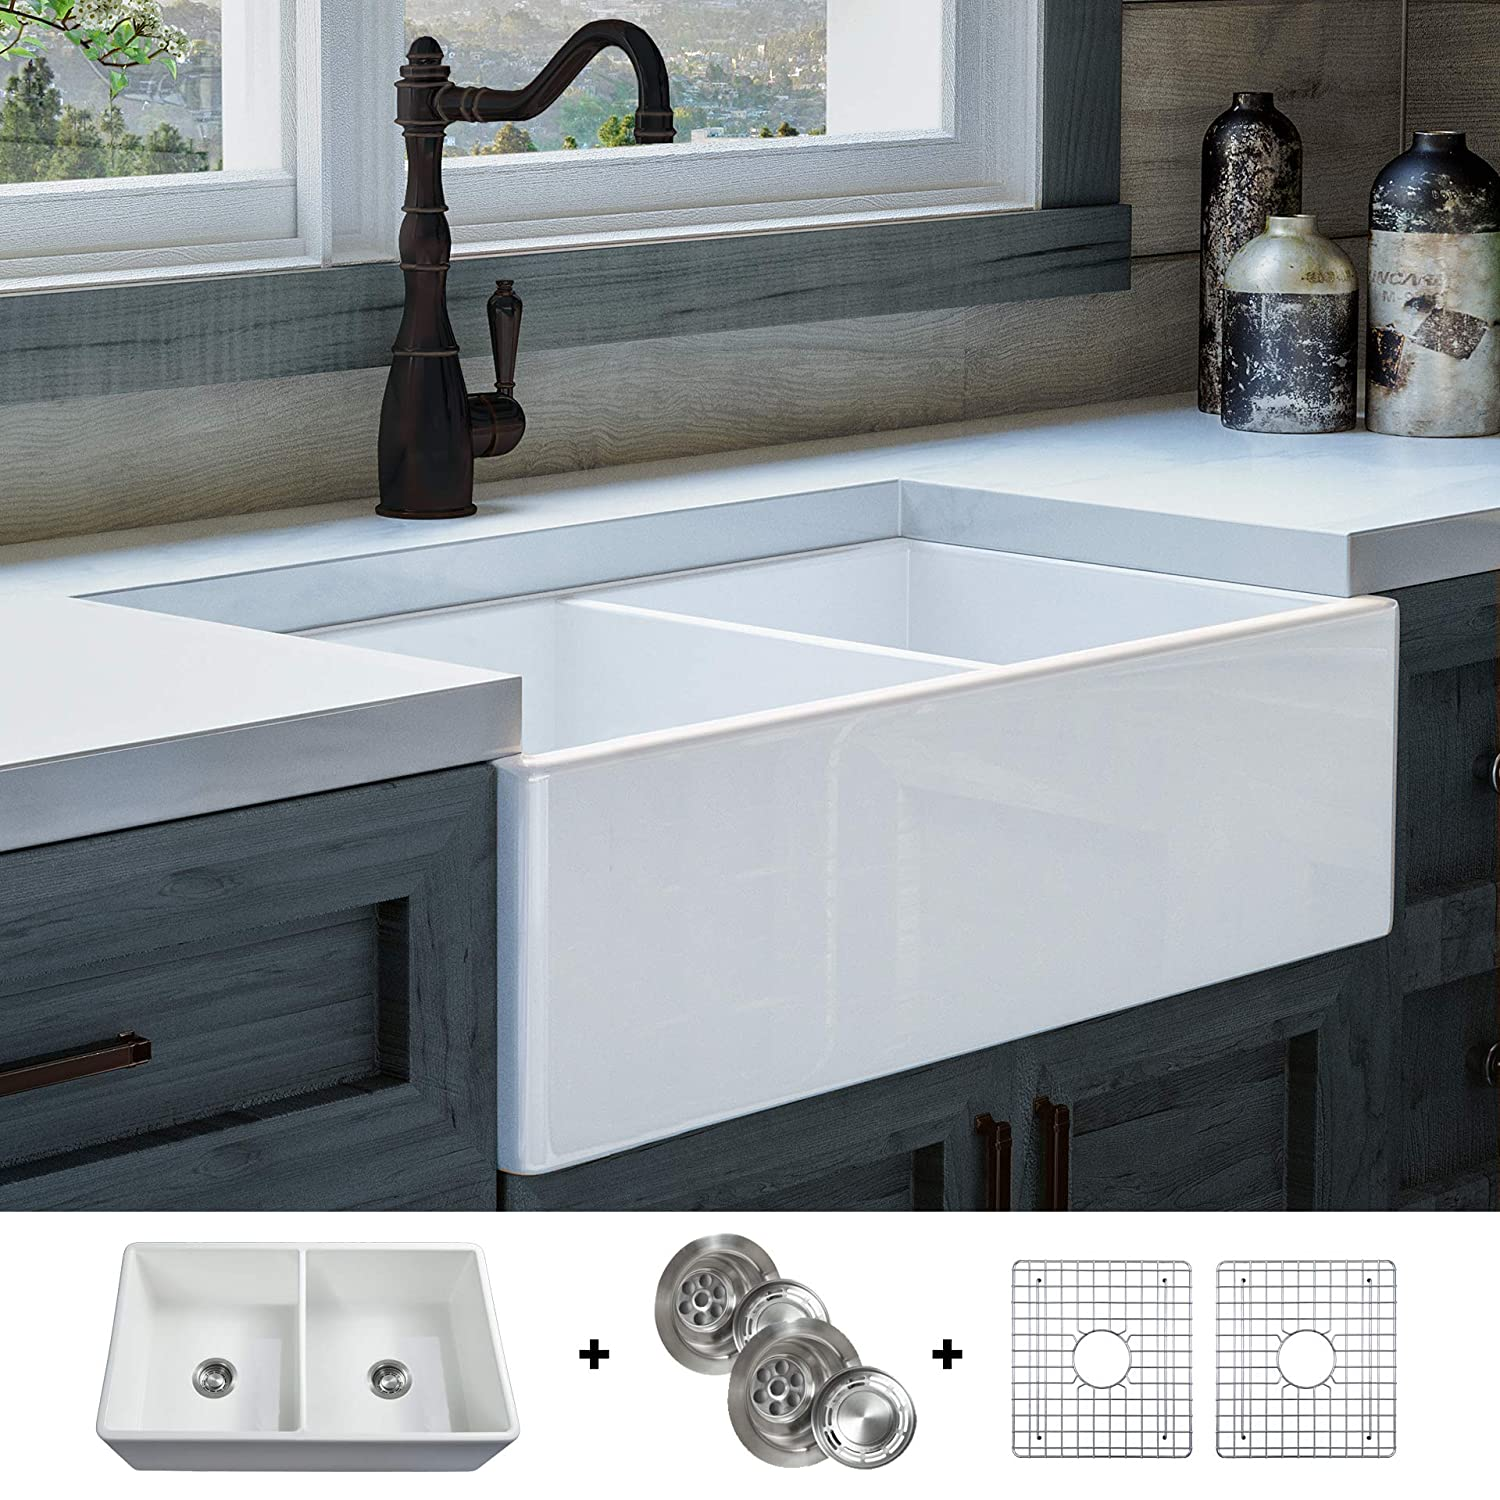 Luxury 33 inch Solid NOT HOLLOW , Ultra-Fine Fireclay Modern Farmhouse Kitchen Sink in White, Double Bowl, Flat Front, includes Grids and Drains, FSW1003 by Fossil Blu